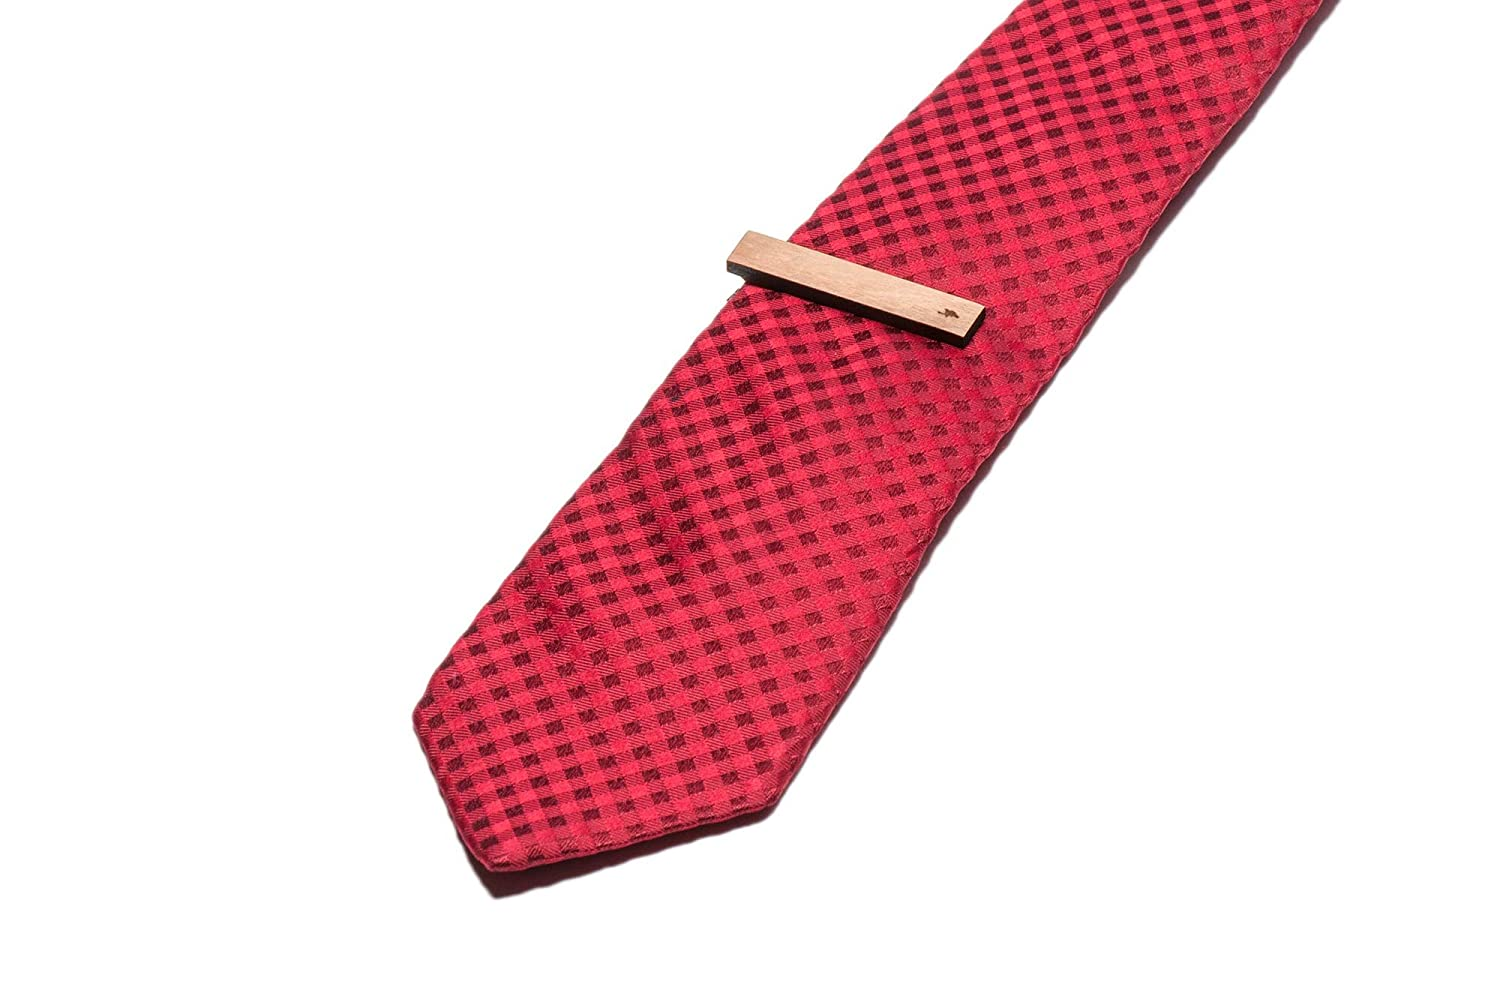 Cherry Wood Tie Bar Engraved in The USA Wooden Accessories Company Wooden Tie Clips with Laser Engraved Hispaniola Design